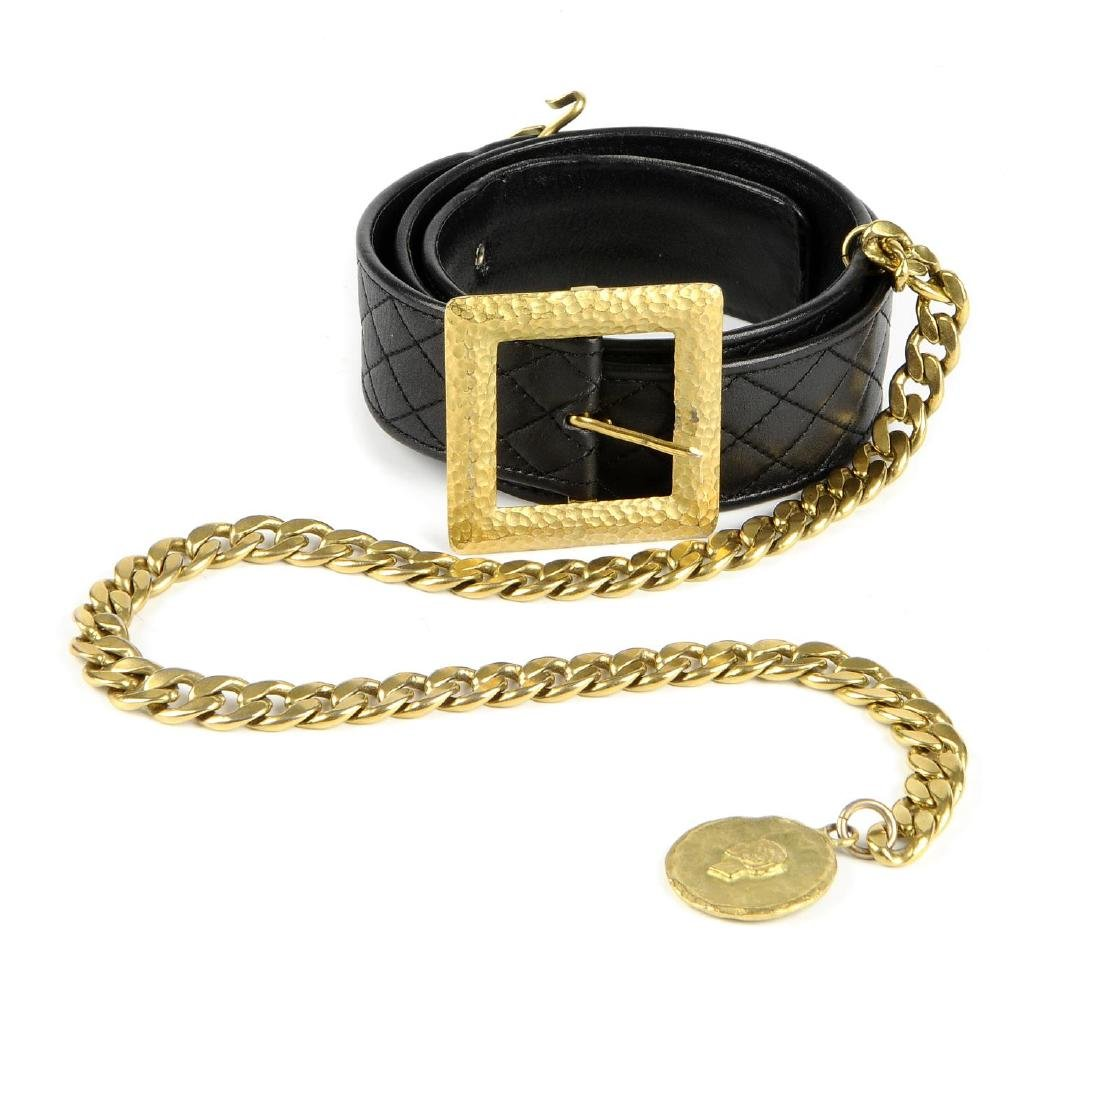 CHANEL - a vintage leather belt with chain drop. The